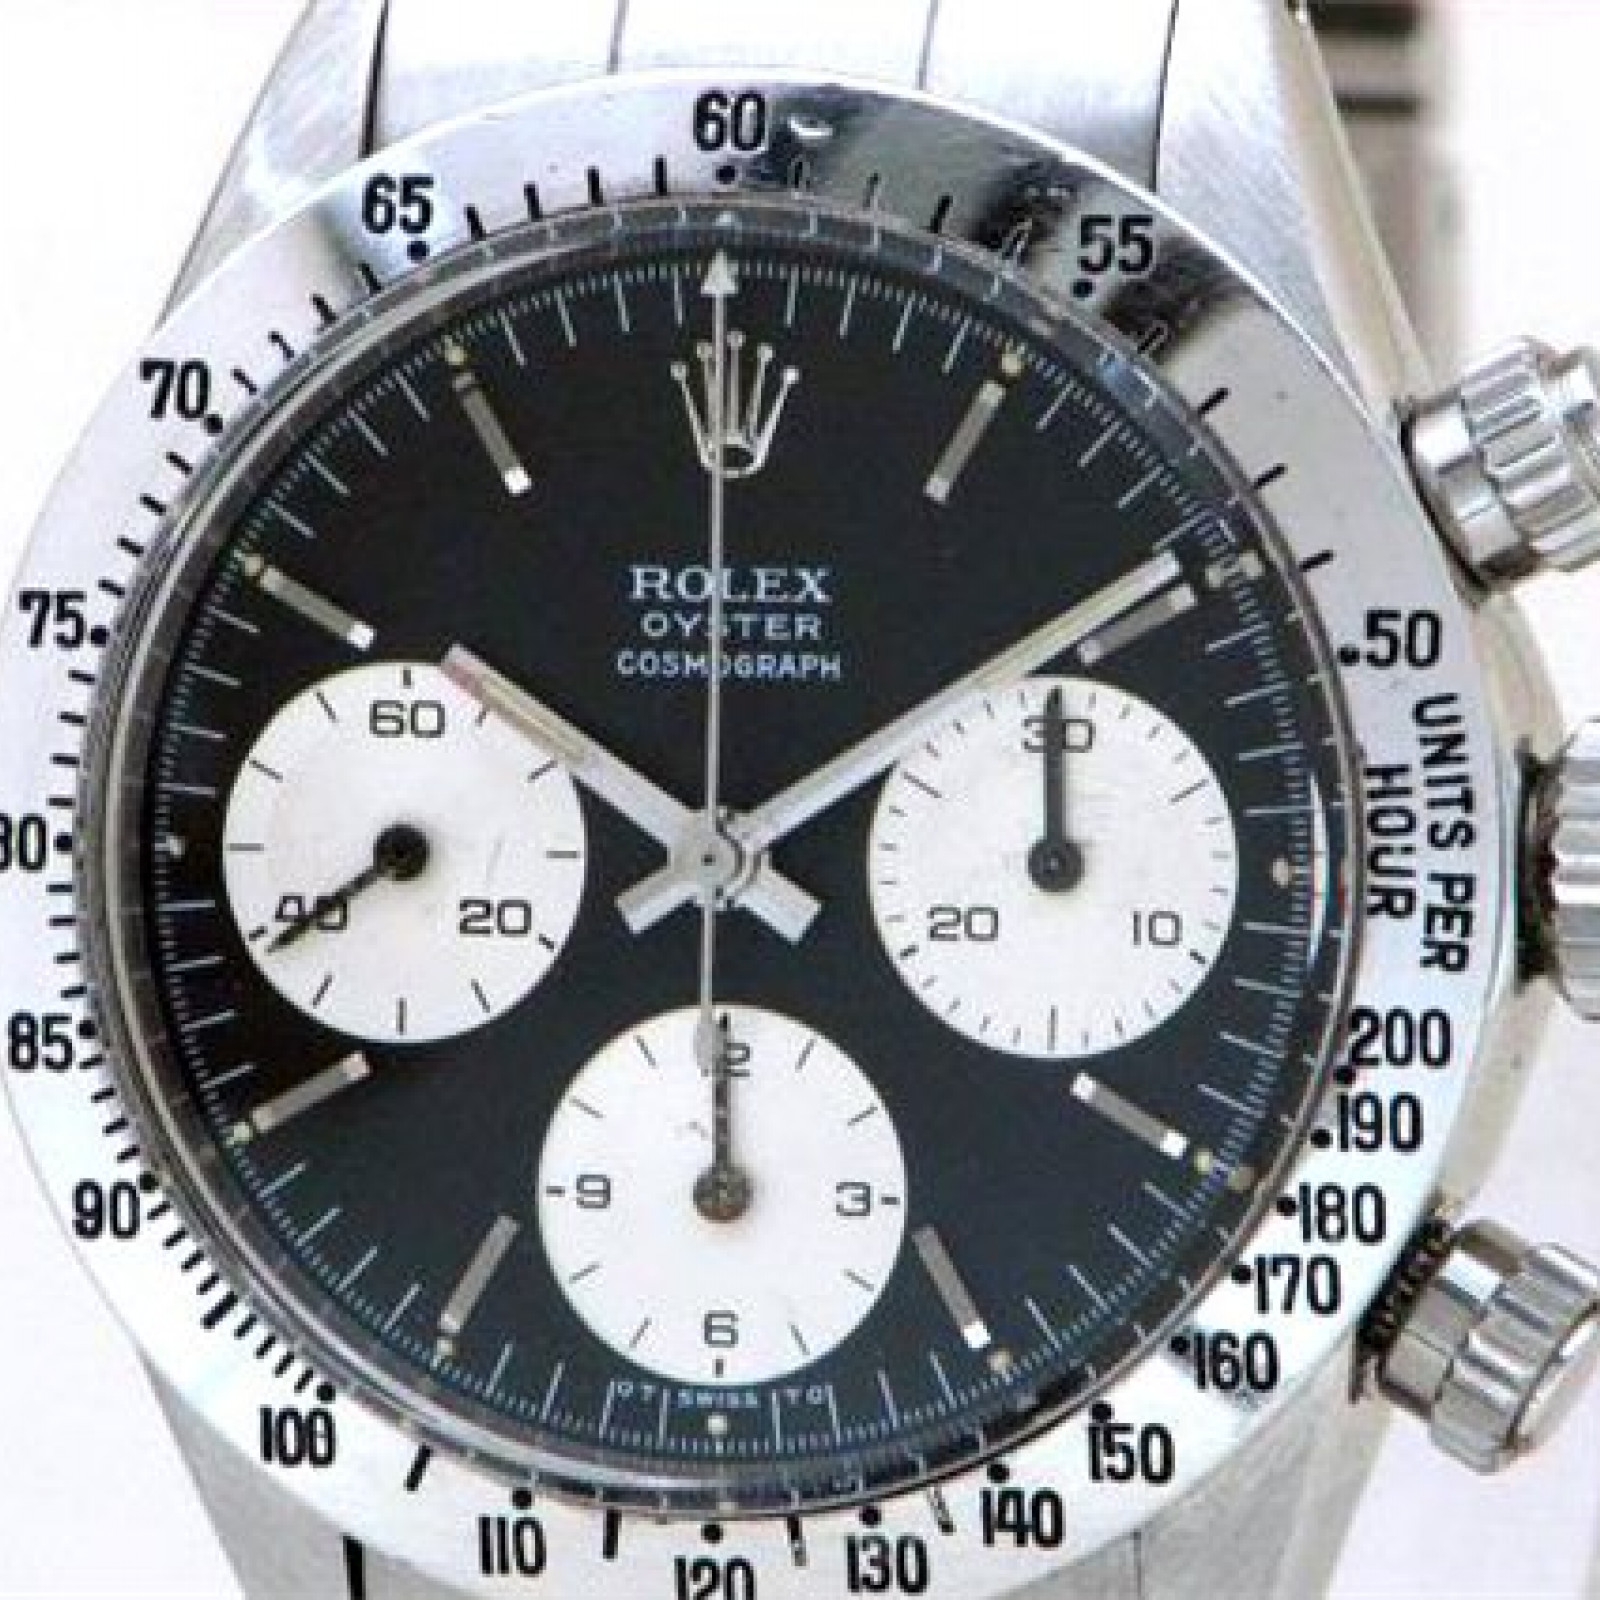 Vintage Rolex Chronograph 6265 Steel with Black Dial